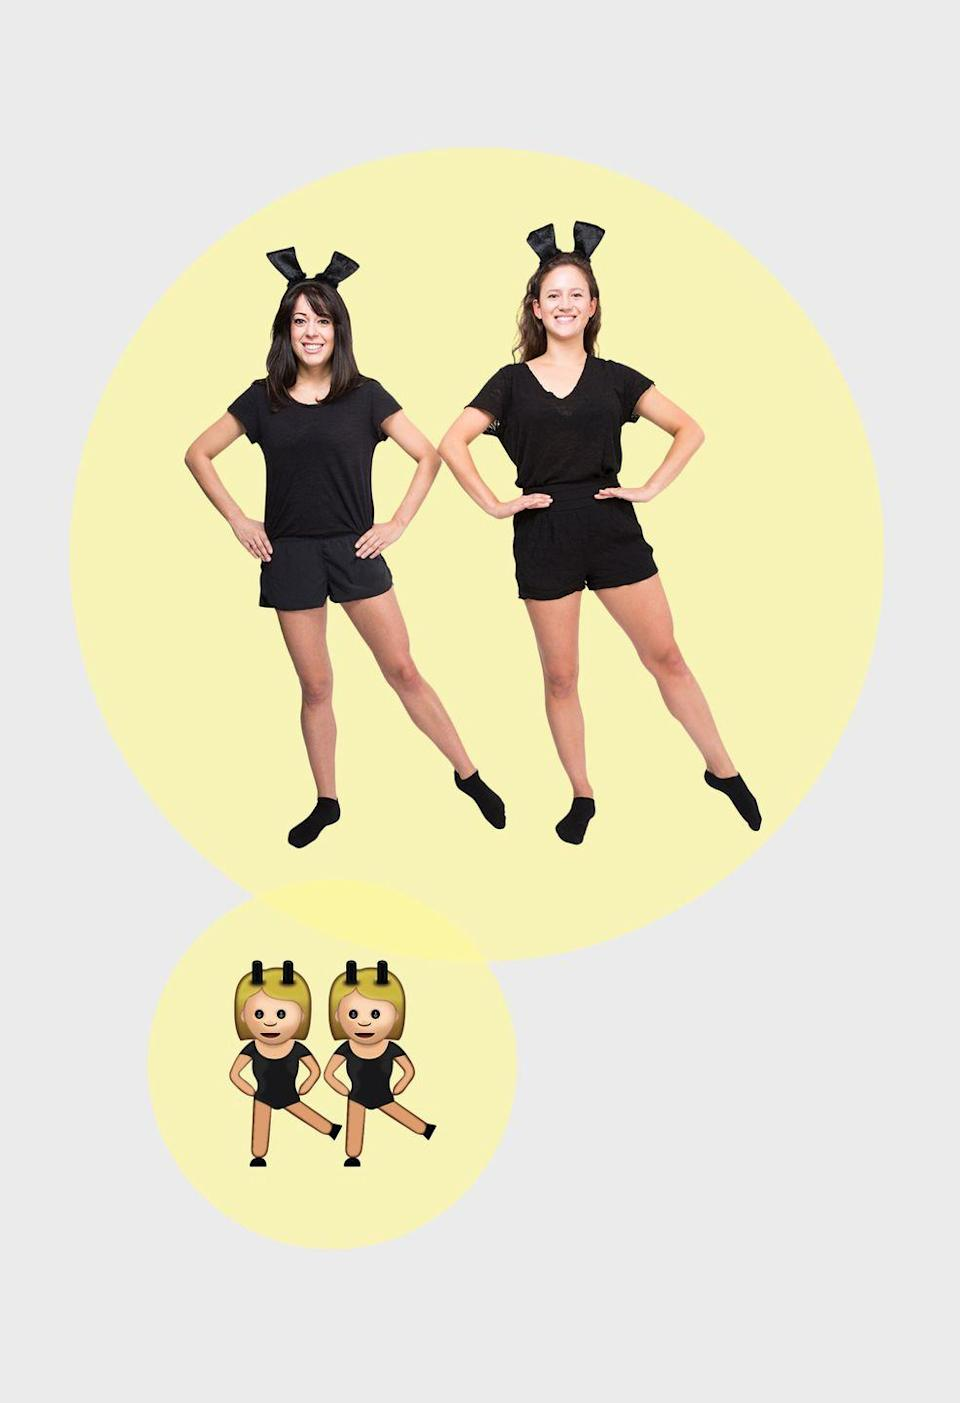 """<p>For a duo that's super in sync, these matching dancer costumes are a sure hit. Before you make your party debut, practice that pointed left foot and you'll be ready for your Instagram-worthy shot. </p><p><a class=""""link rapid-noclick-resp"""" href=""""https://www.amazon.com/Headband-Easter-Cosplay-Costume-Accessory/dp/B075M8HMKC/?tag=syn-yahoo-20&ascsubtag=%5Bartid%7C10055.g.2625%5Bsrc%7Cyahoo-us"""" rel=""""nofollow noopener"""" target=""""_blank"""" data-ylk=""""slk:SHOP BLACK BUNNY EARS"""">SHOP BLACK BUNNY EARS</a> </p>"""